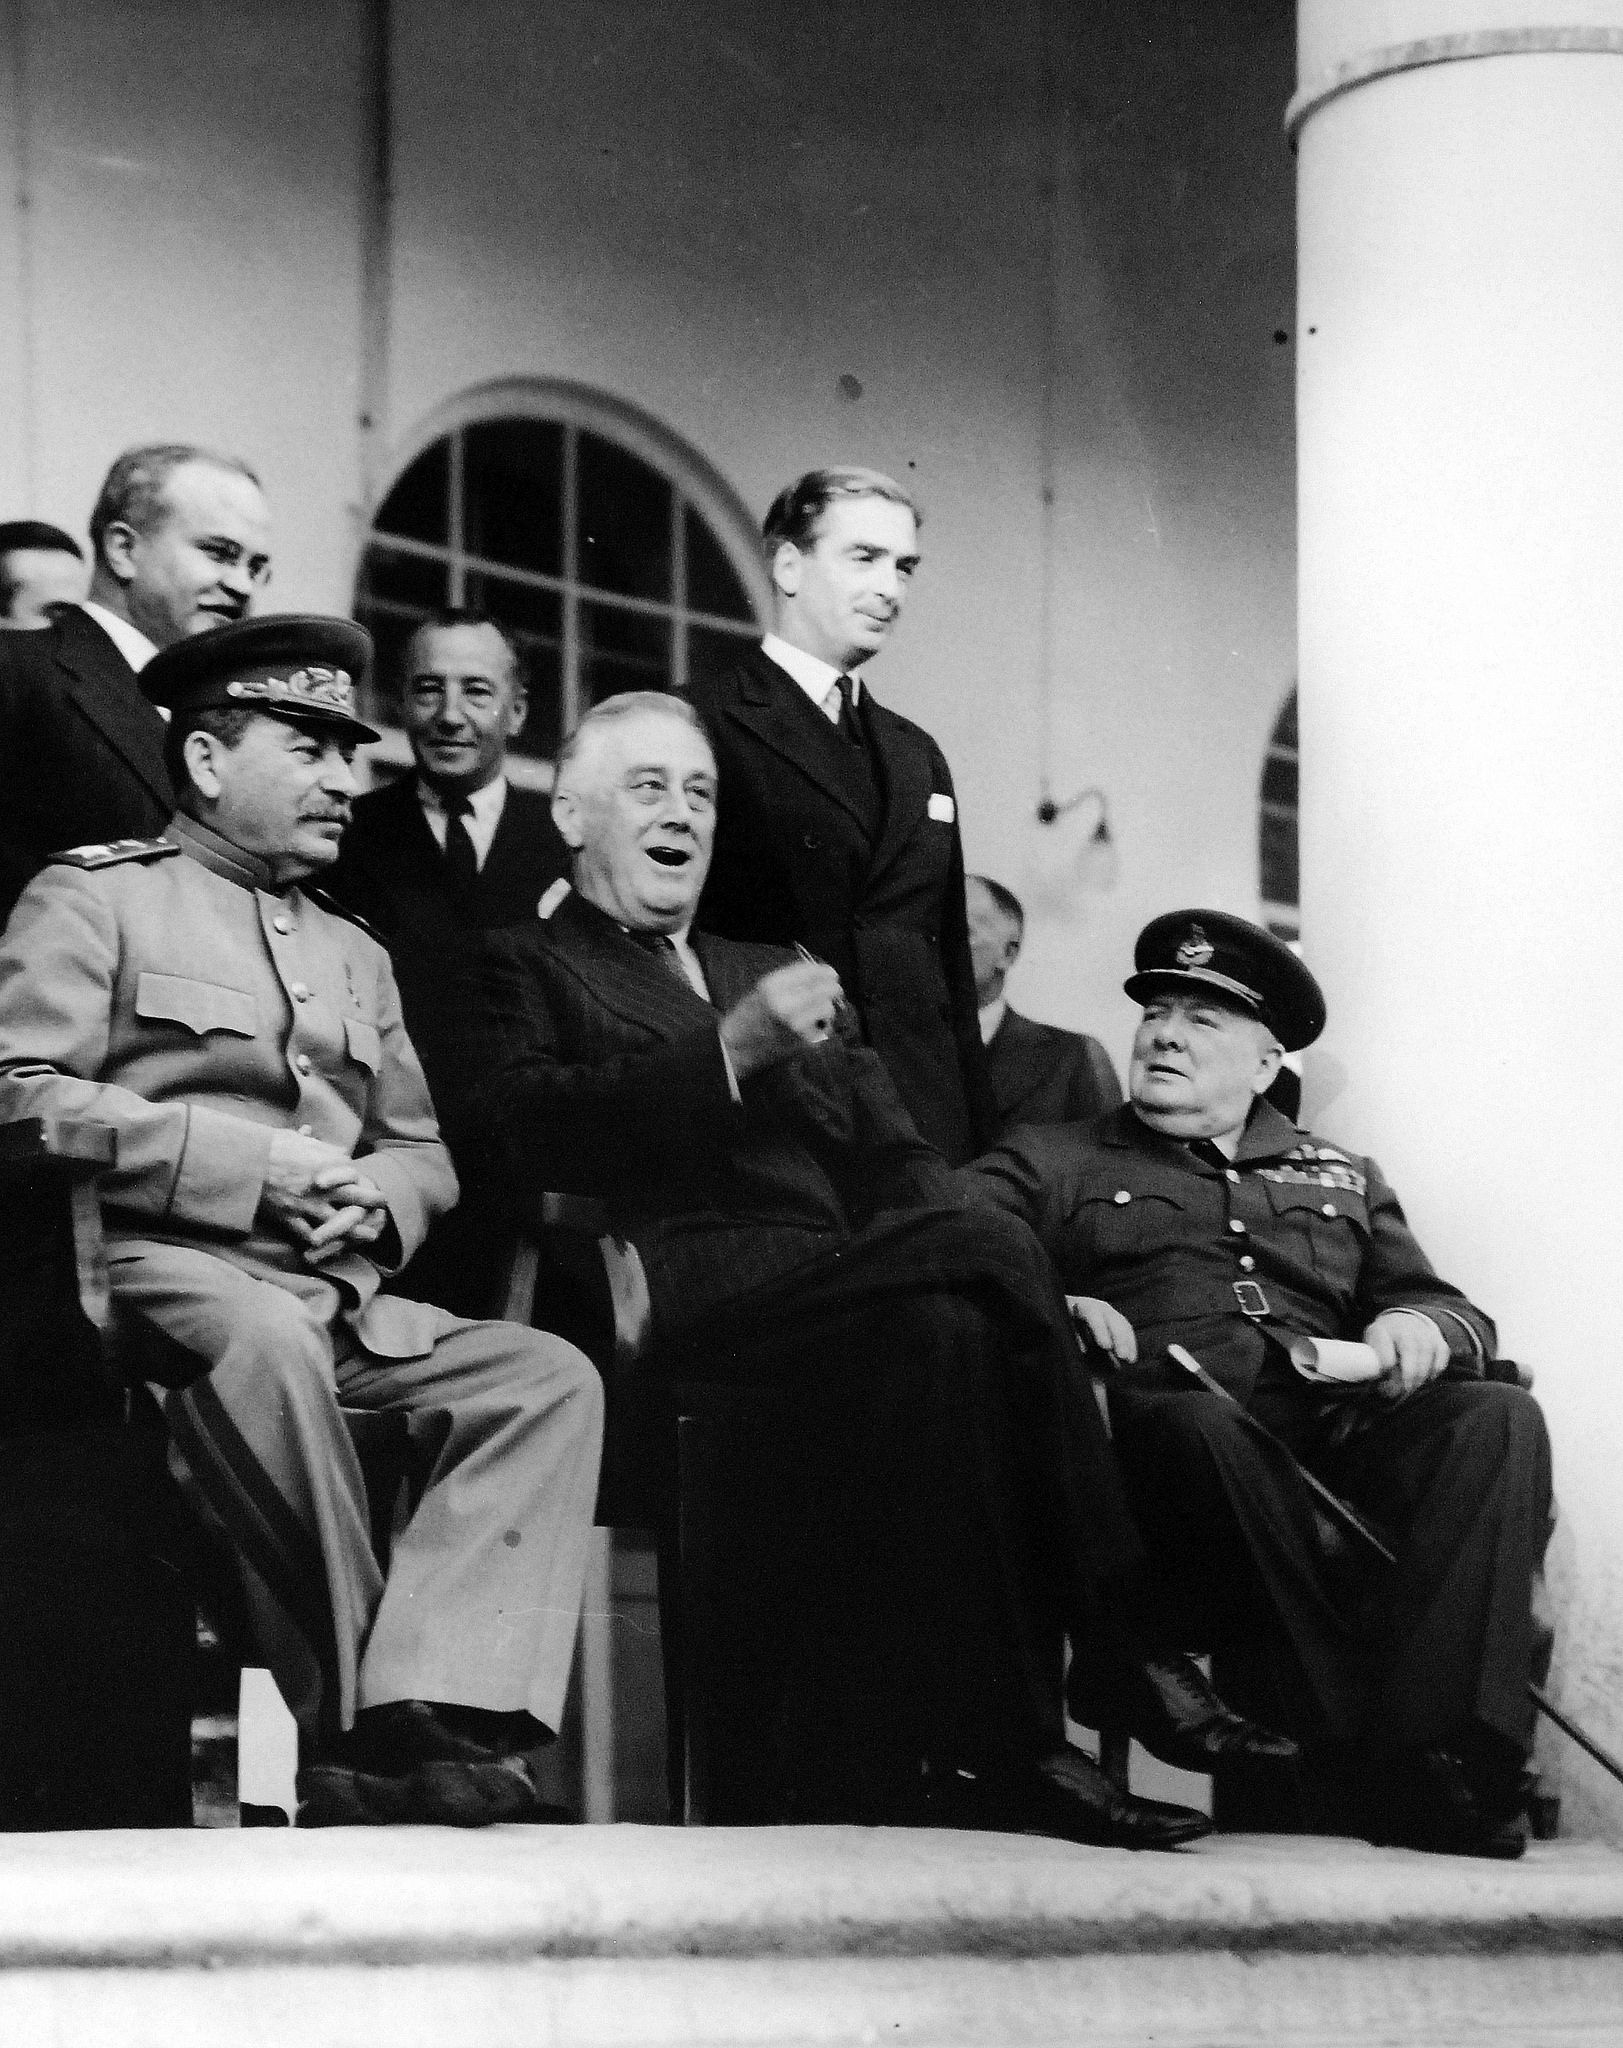 """Lot 11597-5: Tehran Conference, November 28-December 1, 1943. The strategy meeting of Premier Joseph Stalin, President Franklin D. Roosevelt, and Prime Minister Winston Churchill at the Russian Embassy at Tehran, Iran. This conference was the first of """"Big Three"""" leaders (Soviet Union, United States and United Kingdom). Note, V. M. Molotov, Peoples' Commissar for Foreign Affairs, to Stalin's behind right. Originally an U.S. Army photograph. Office of War Information Photograph"""